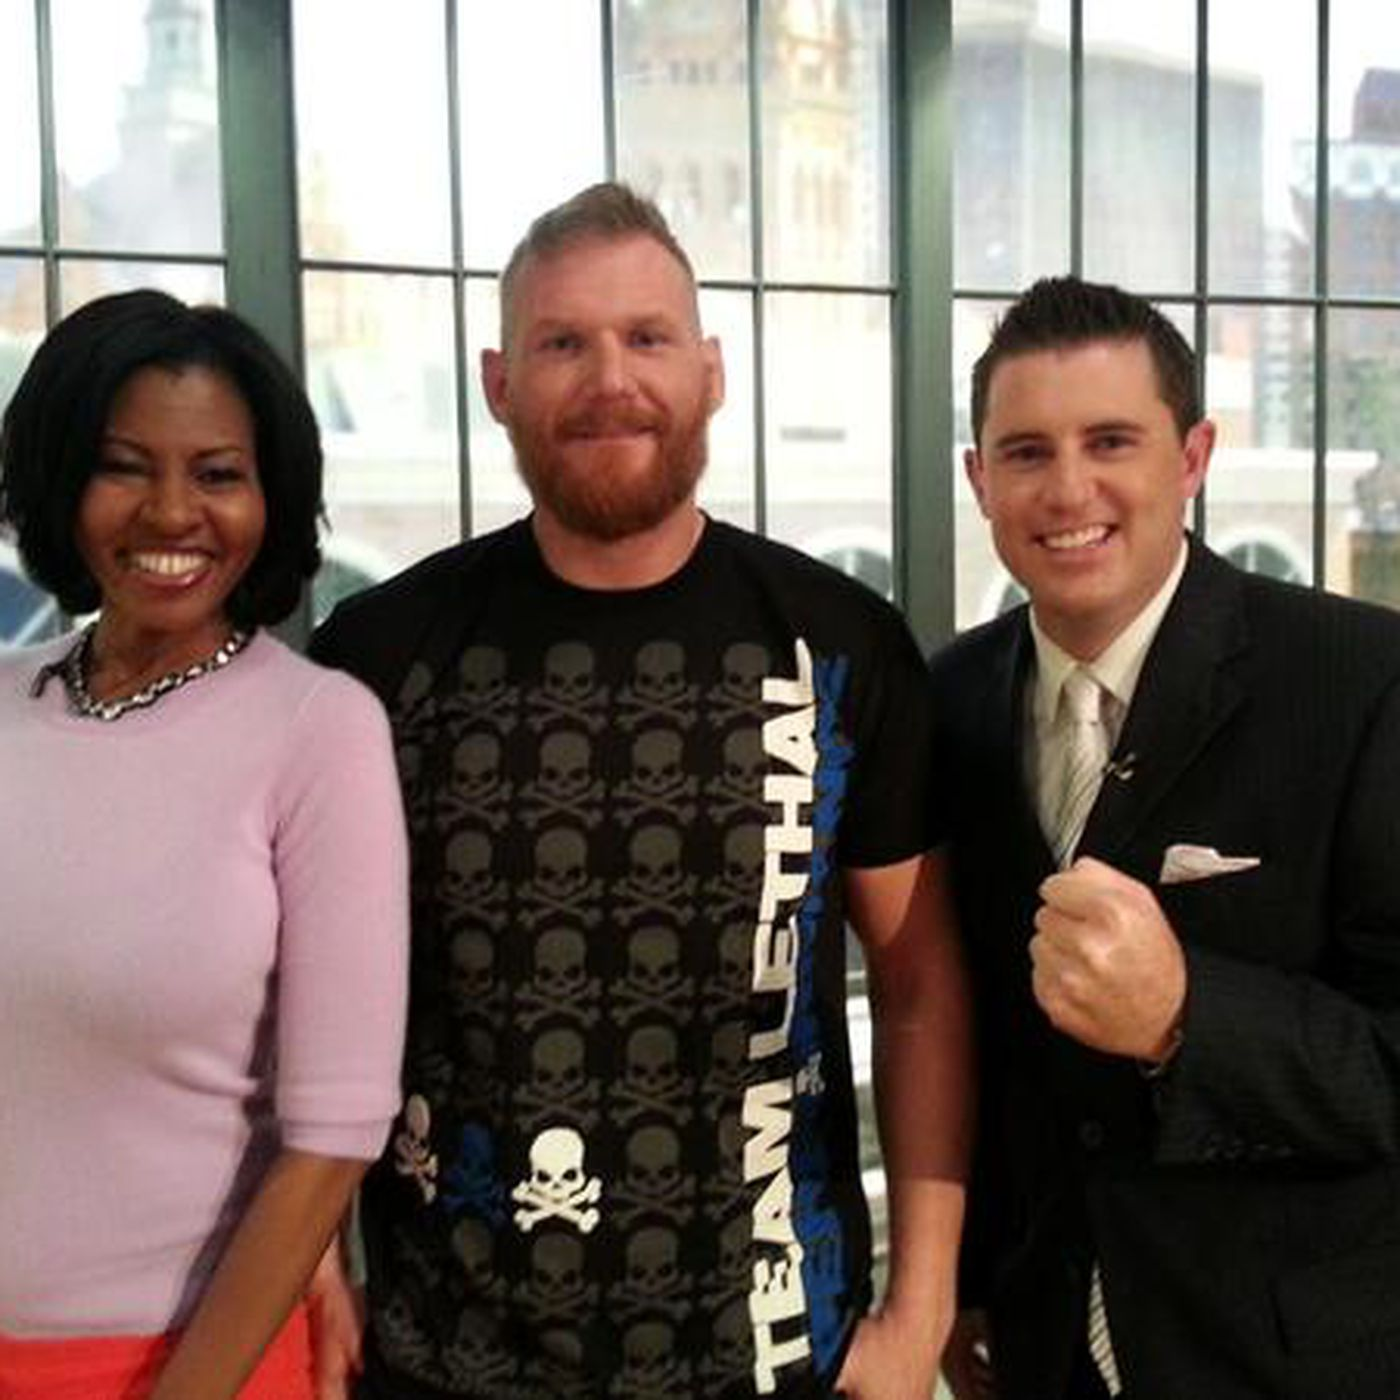 UFC 164 video: Smooth-talking Josh Barnett dazzles FOX news